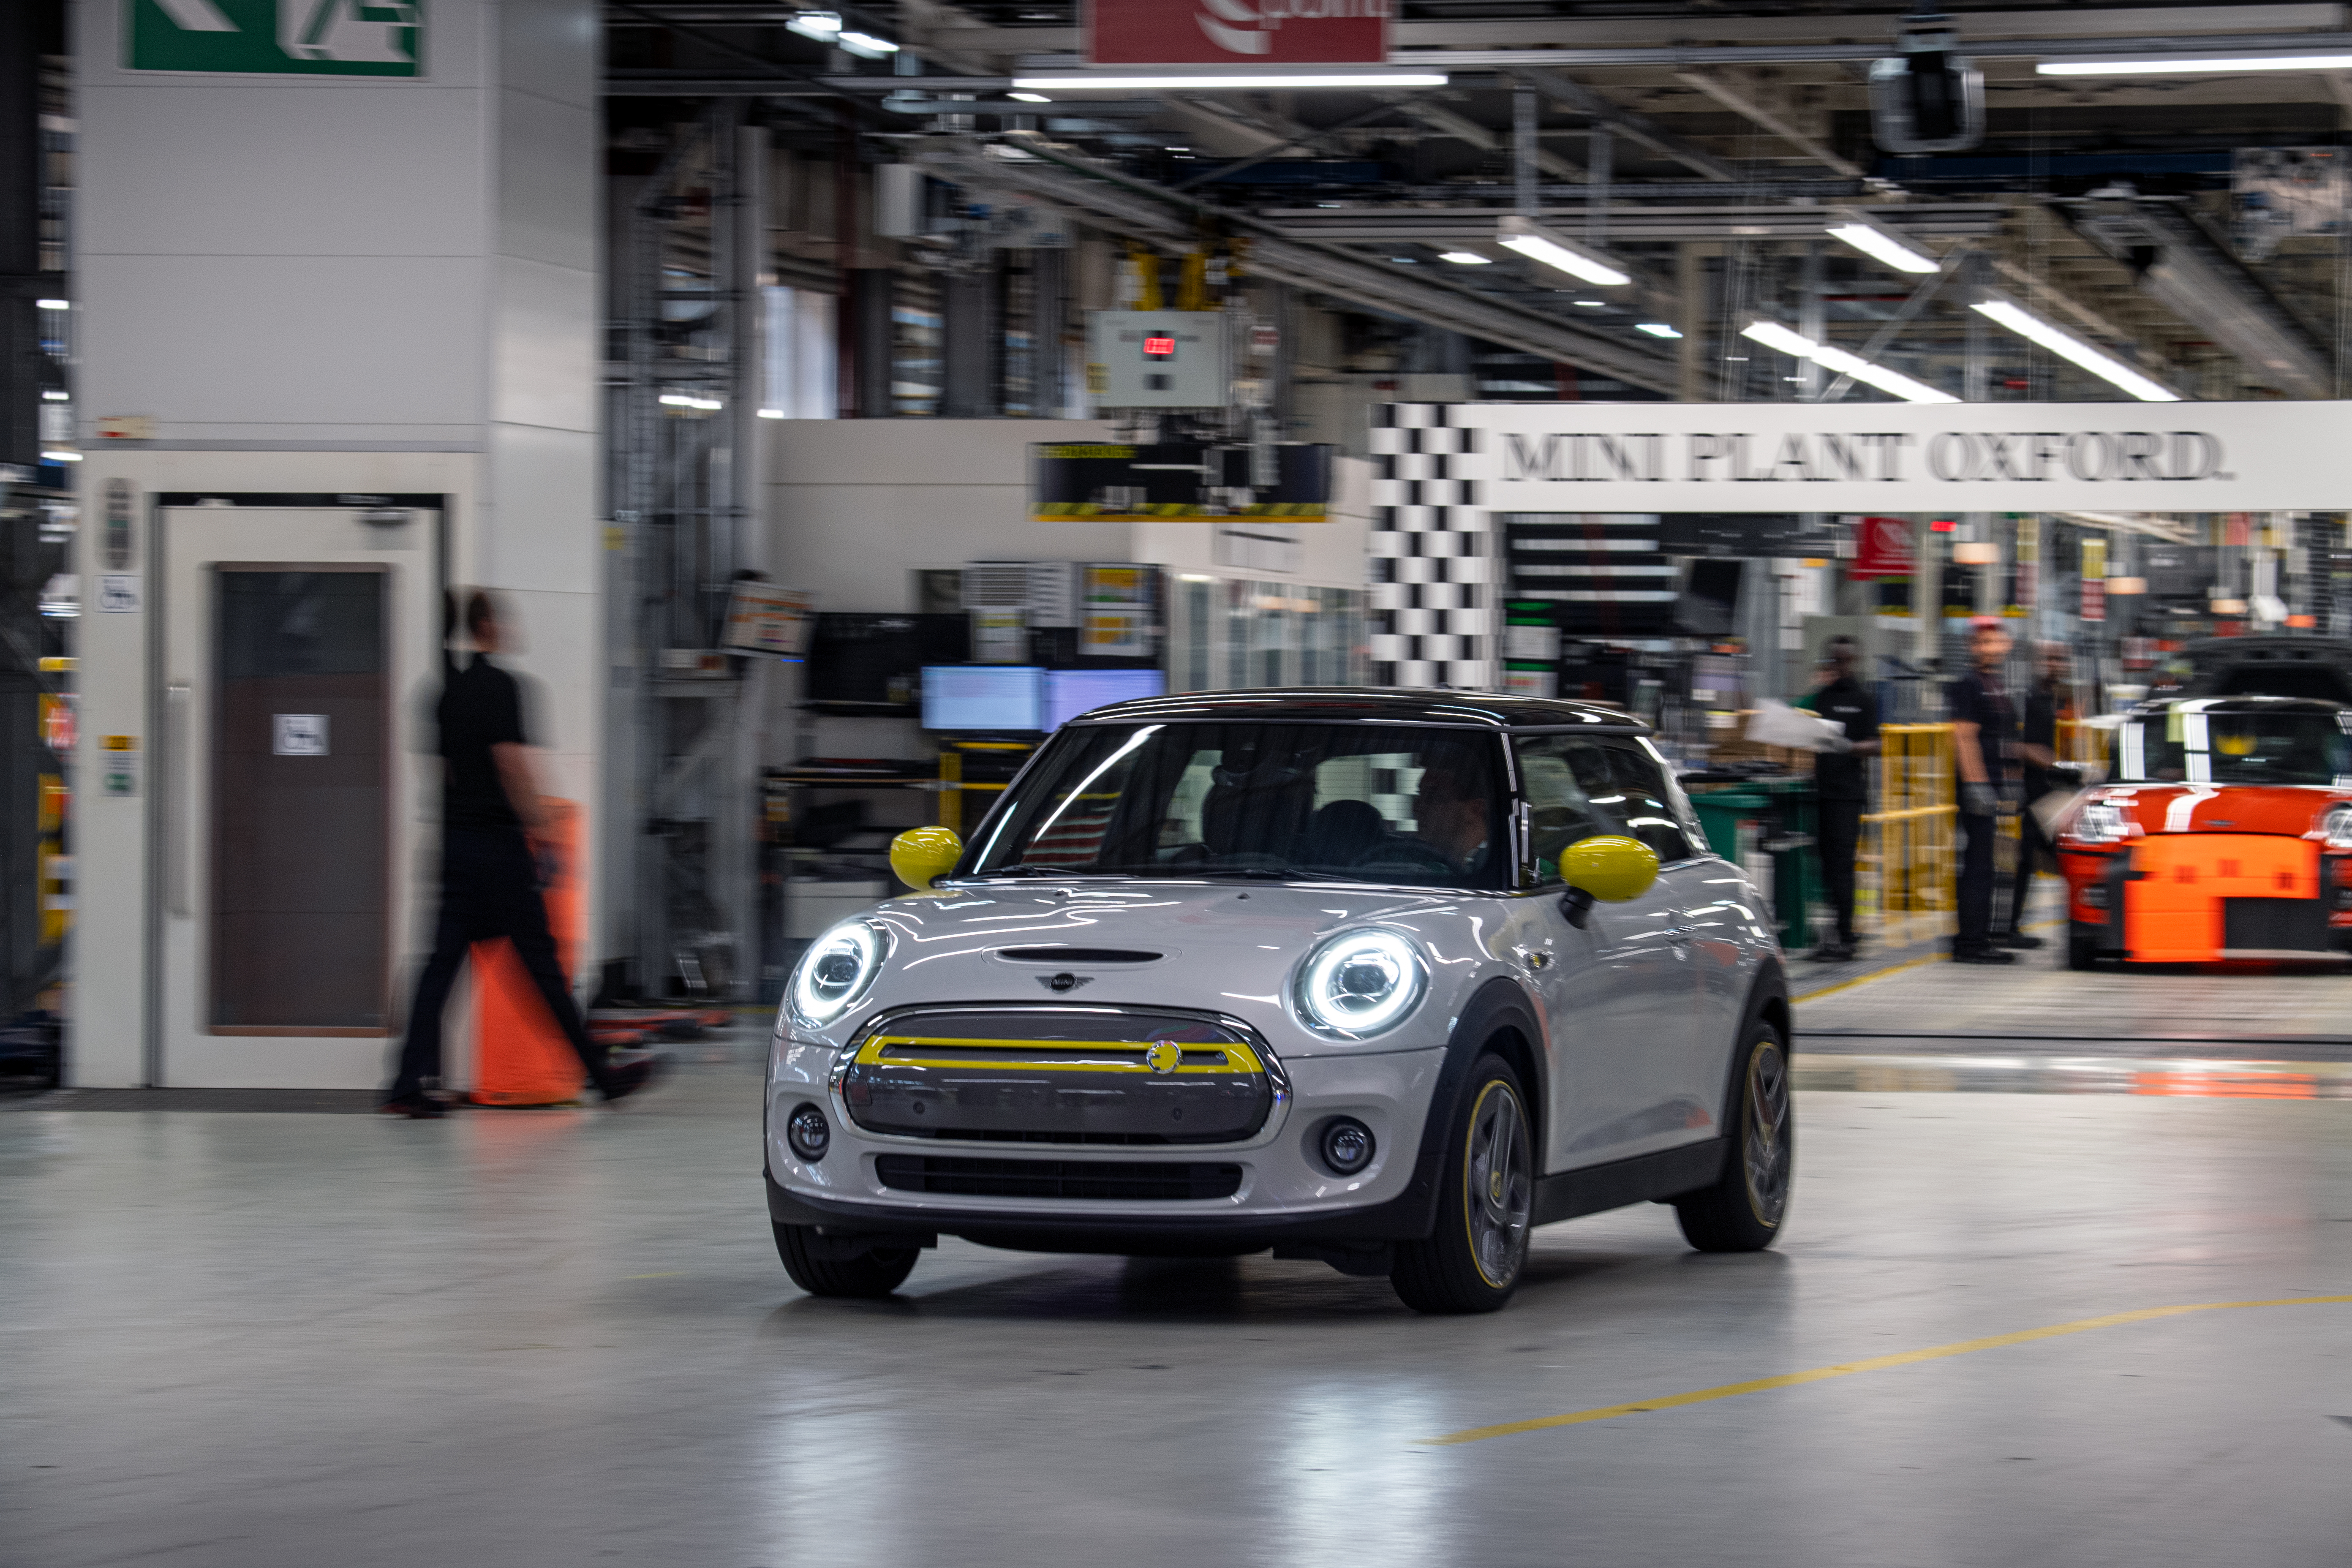 Build A BMW >> Bmw To Build Electric Mini In Oxford Boosting Britain S